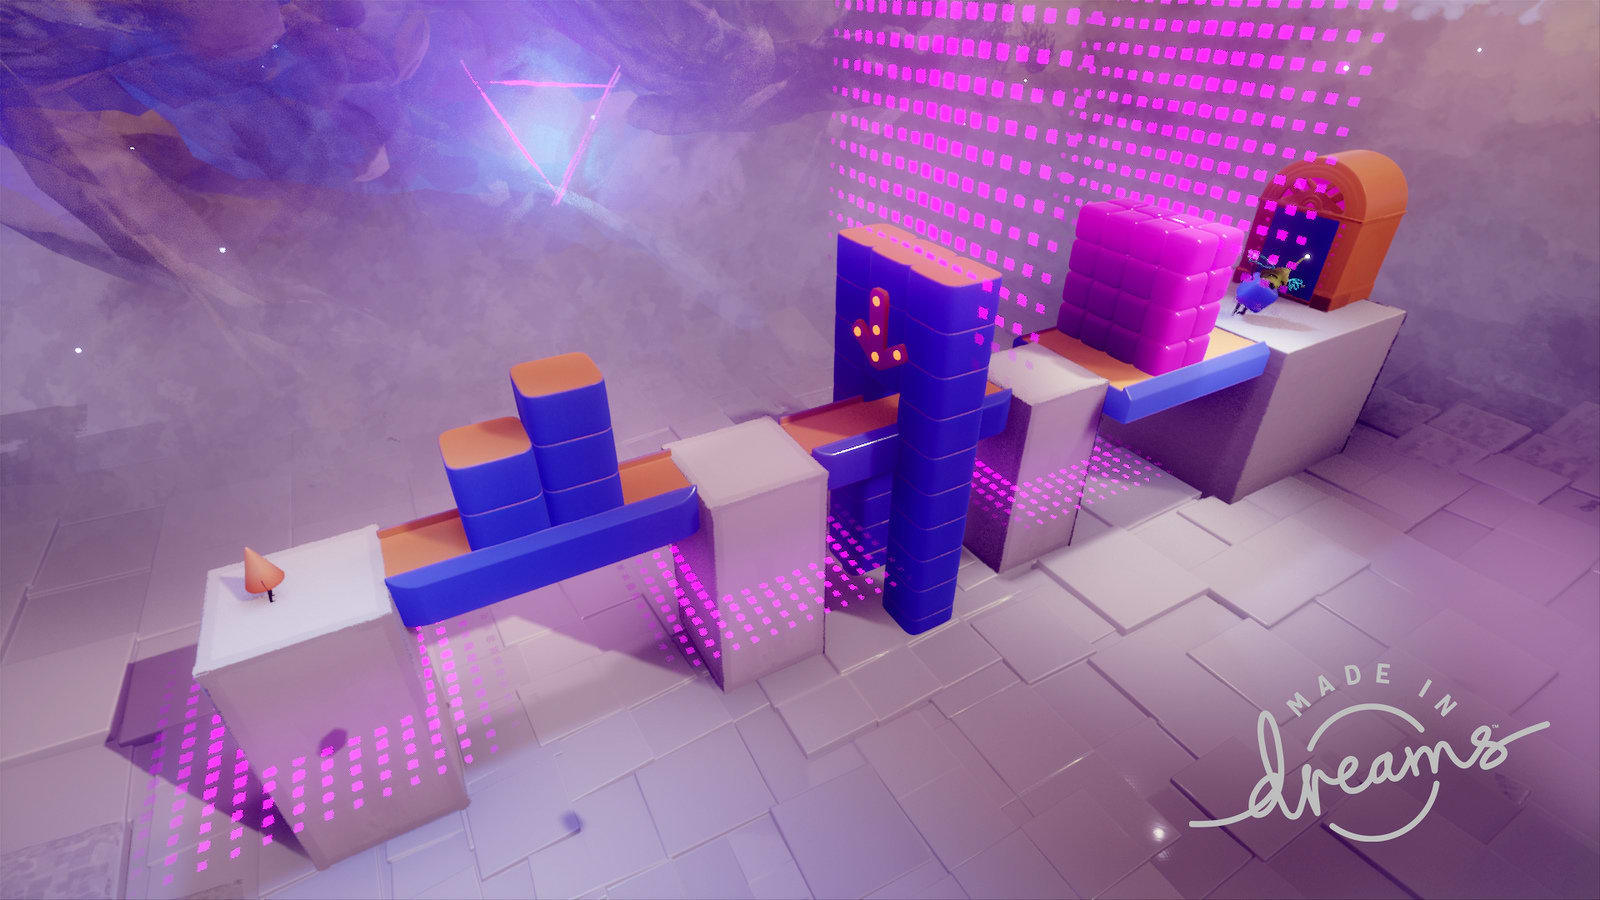 Game-making 'Dreams' arrives on PS4 February 14th